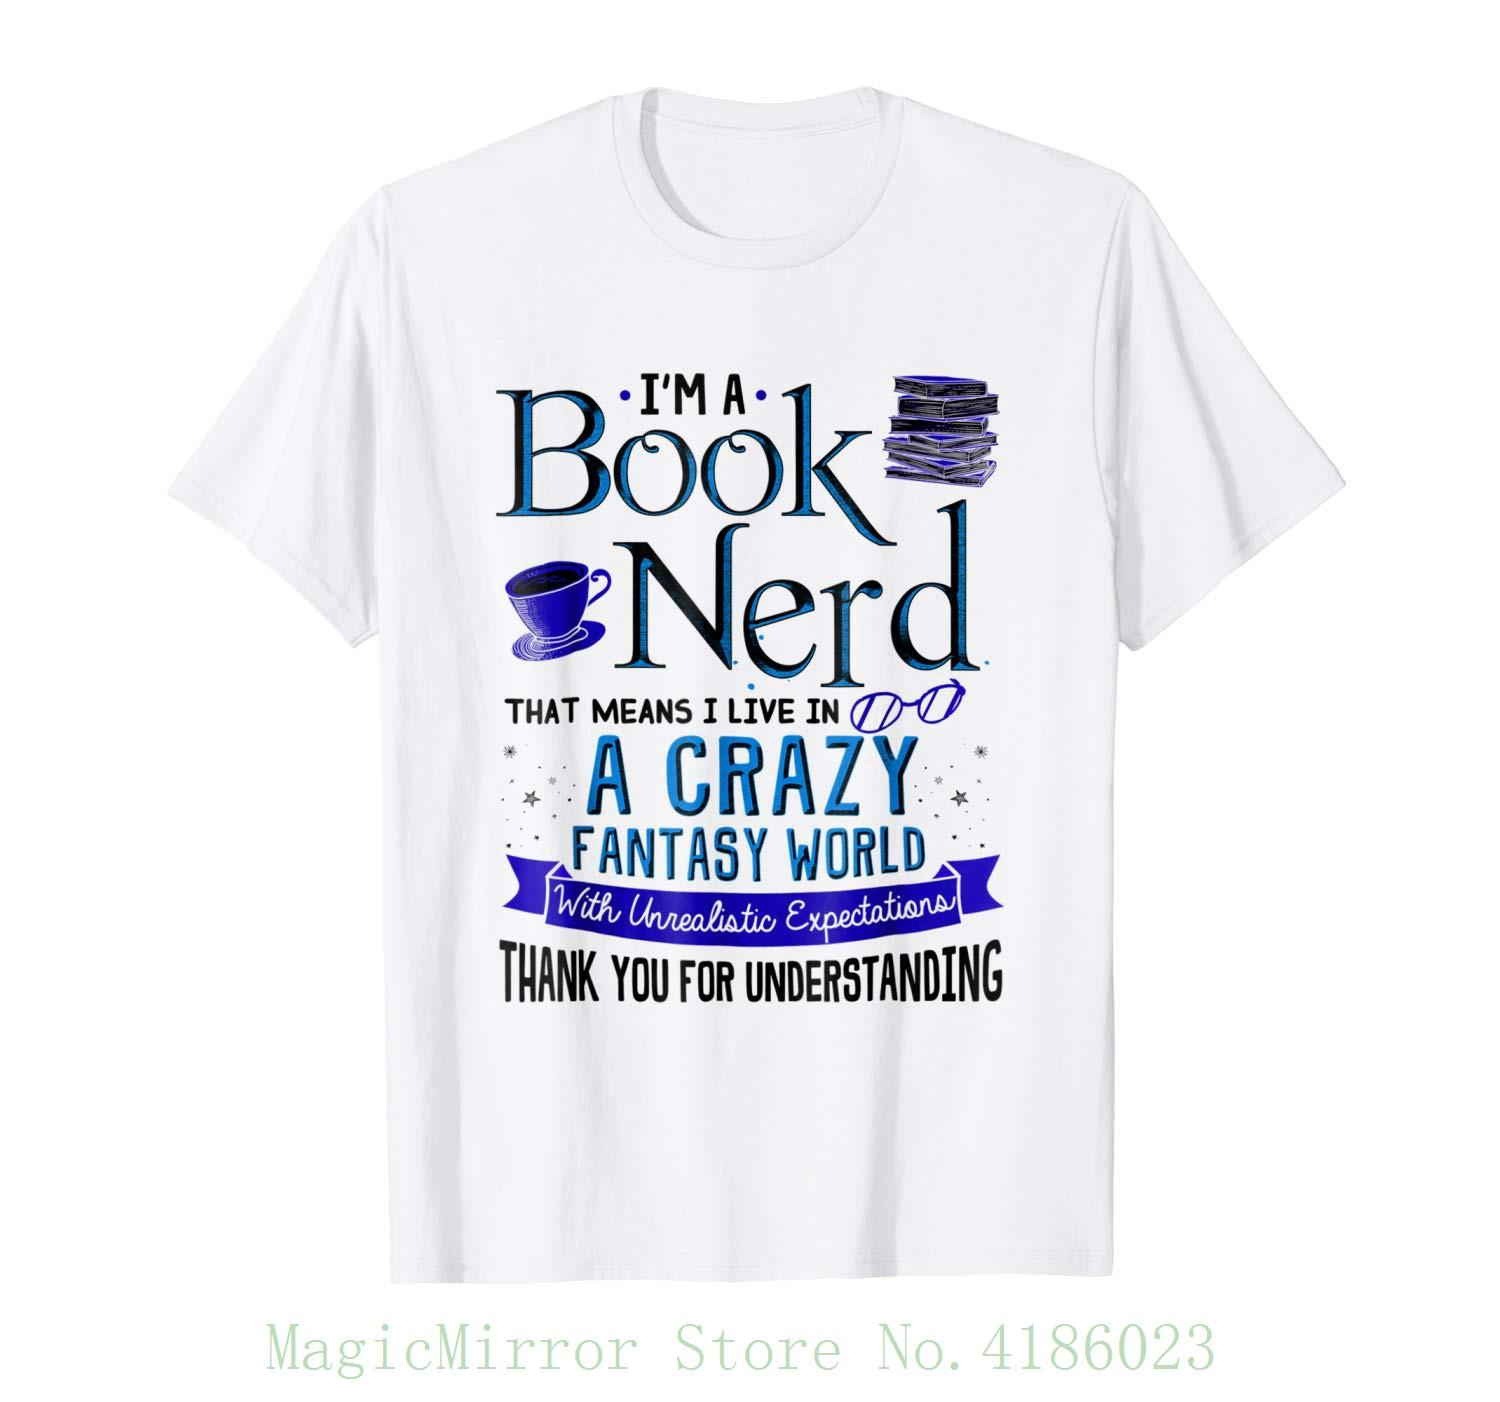 694e458aaab I M A Book Nerd Funny Book Lover T Shirt Bookworm Gift Short Sleeve Mens  Formal Shirts White Designer T Shirts Clever T Shirt From Magicmirrorstore